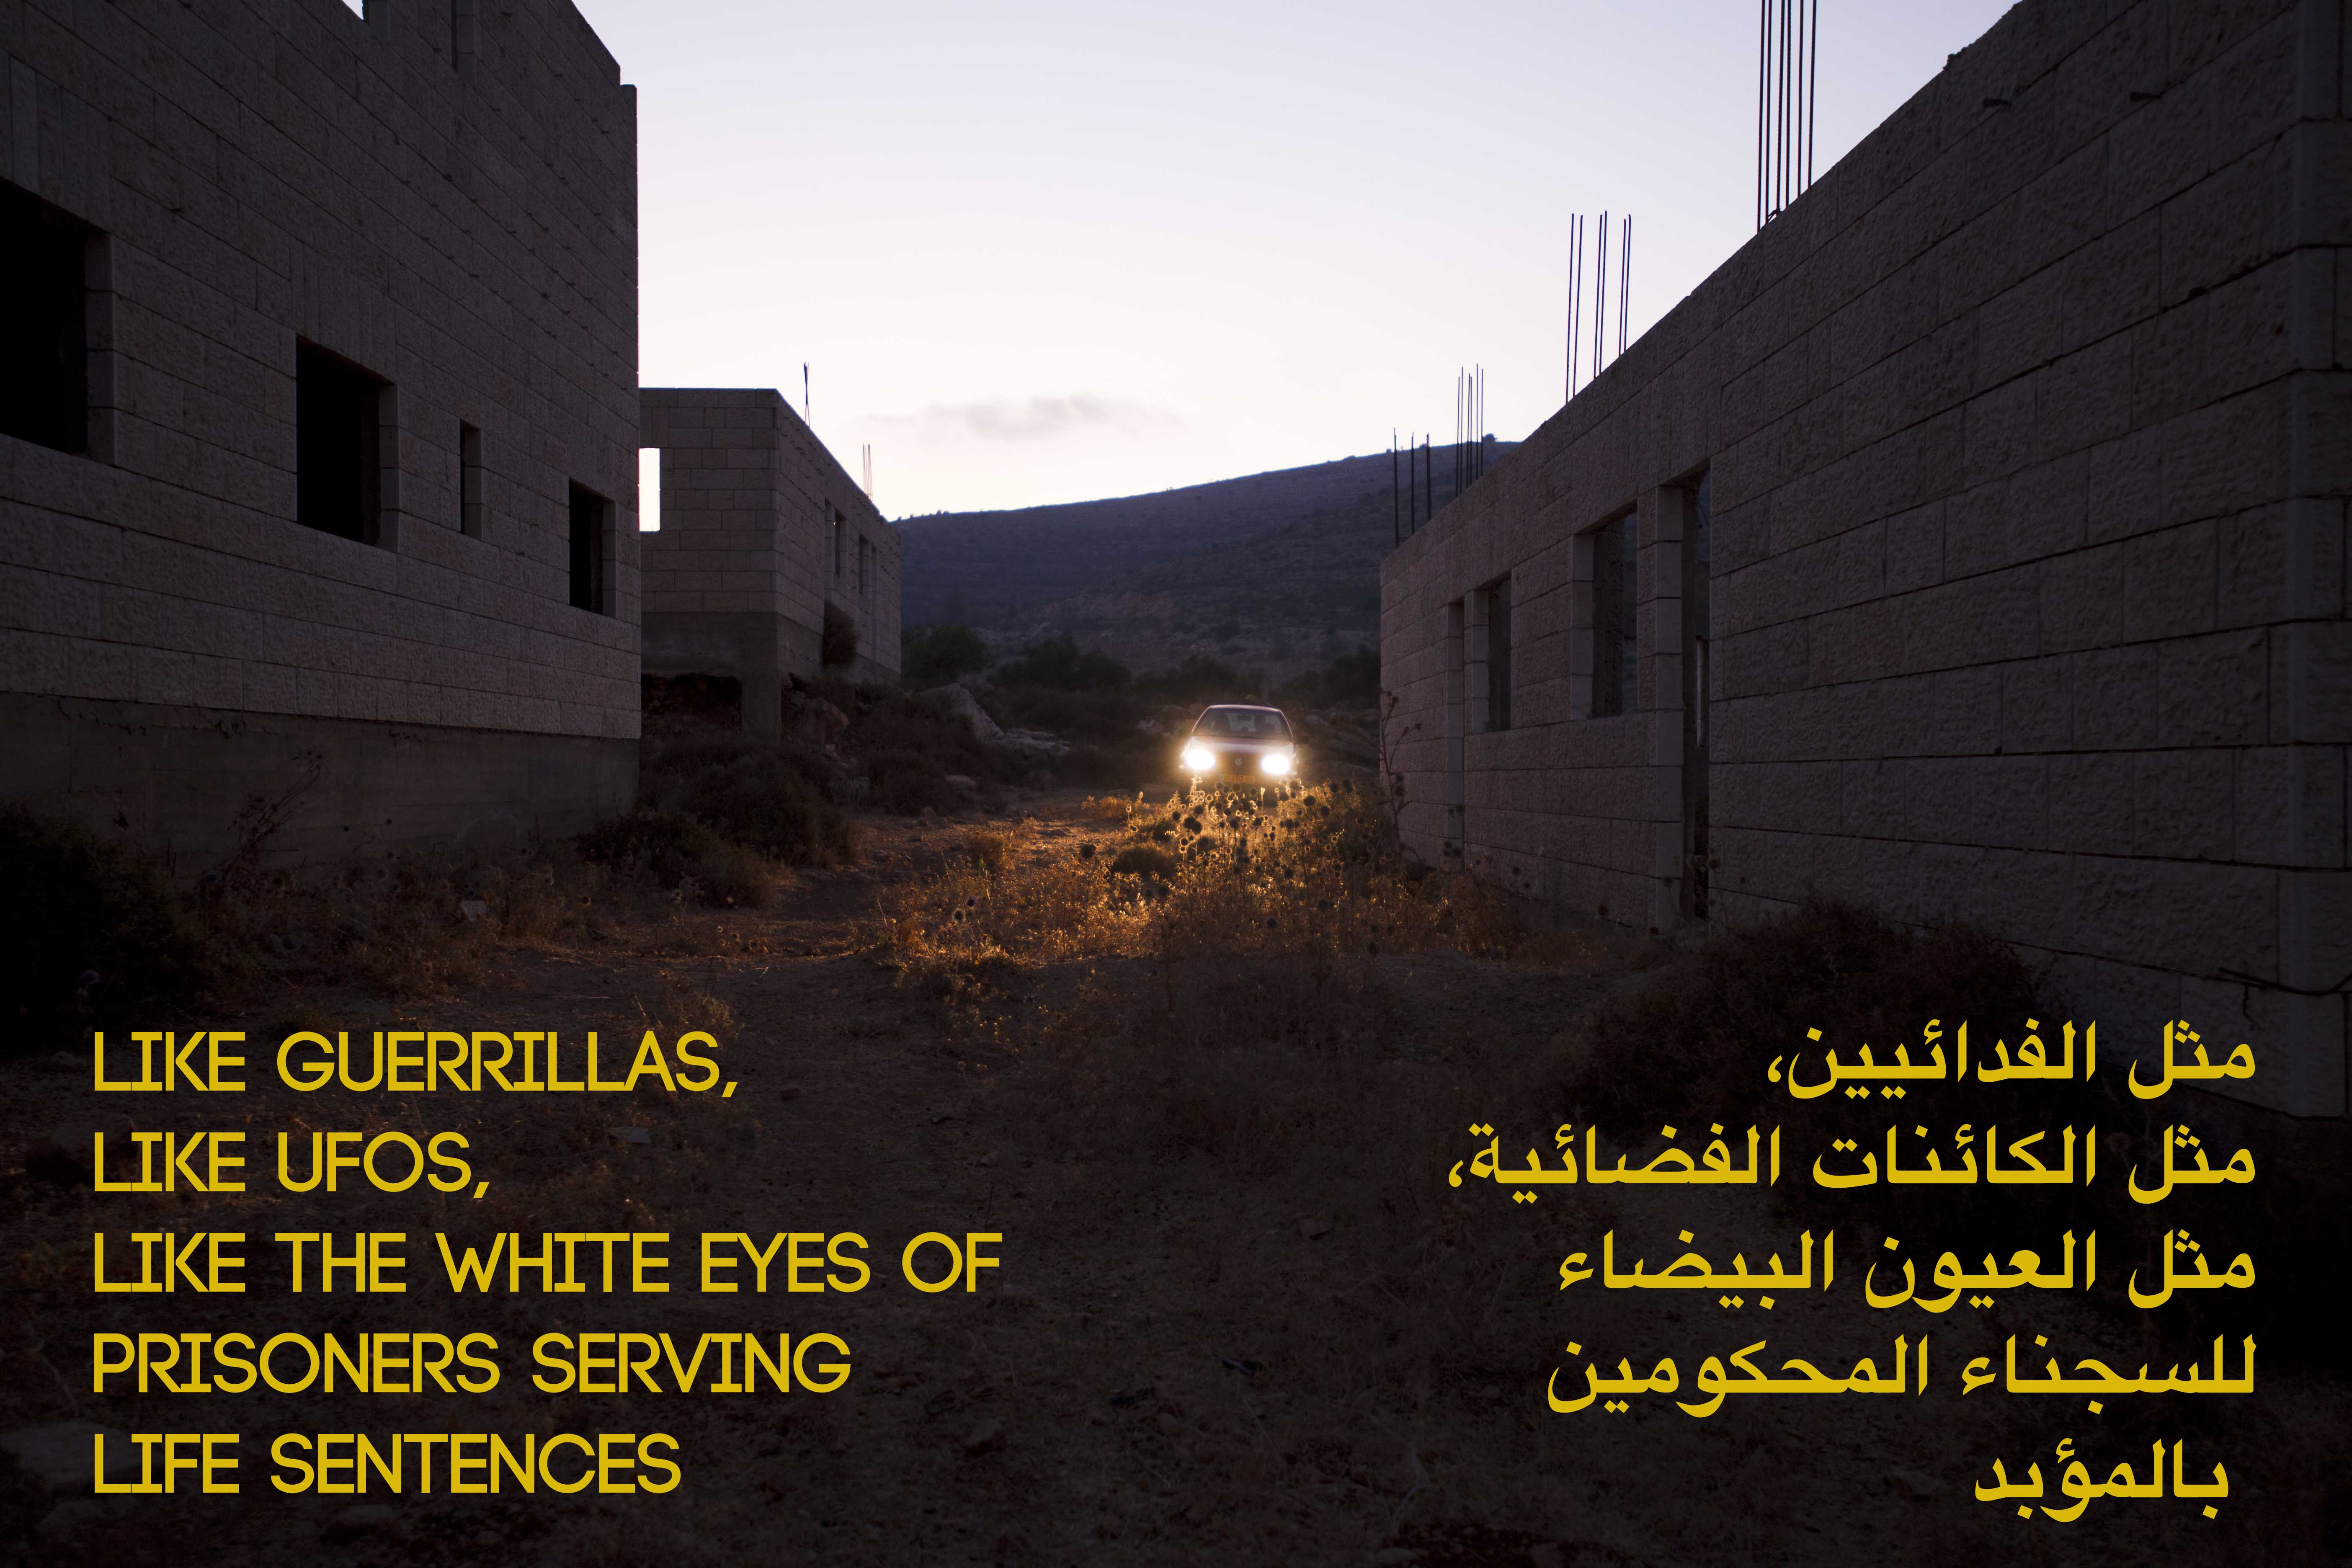 Basel Abbas and Ruanne Abou-Rahme, The Incidental Insurgents (2012- ongoing), Chapter 2, Video Still 3